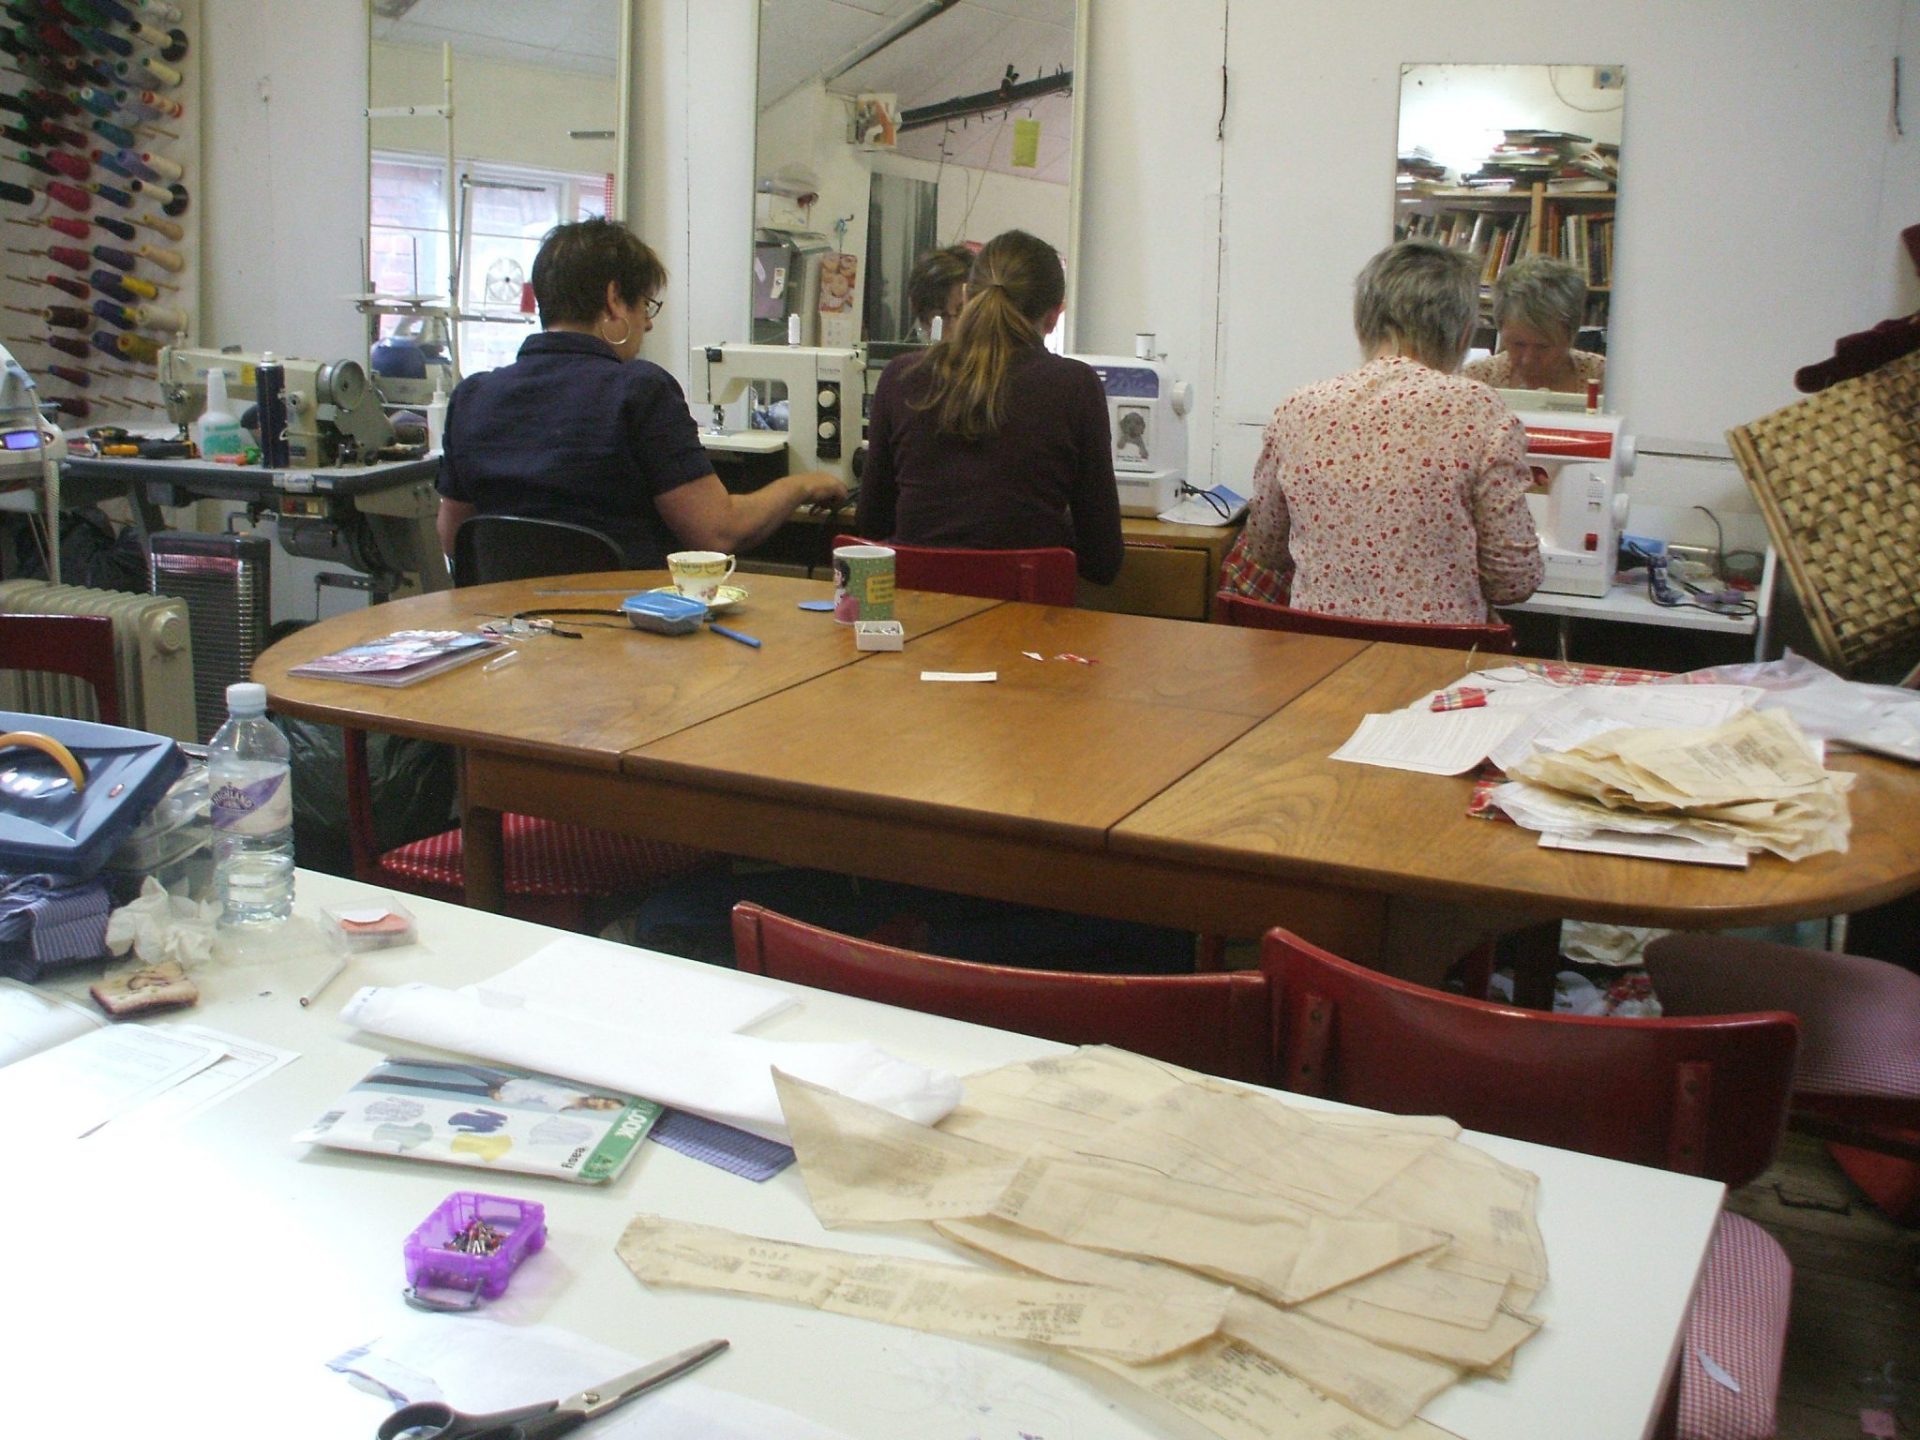 Sewing & Dressmaking Classes in Leeds City Centre, Skirt Making. Learn to make & fit a basic skirt using your own machine & pattern